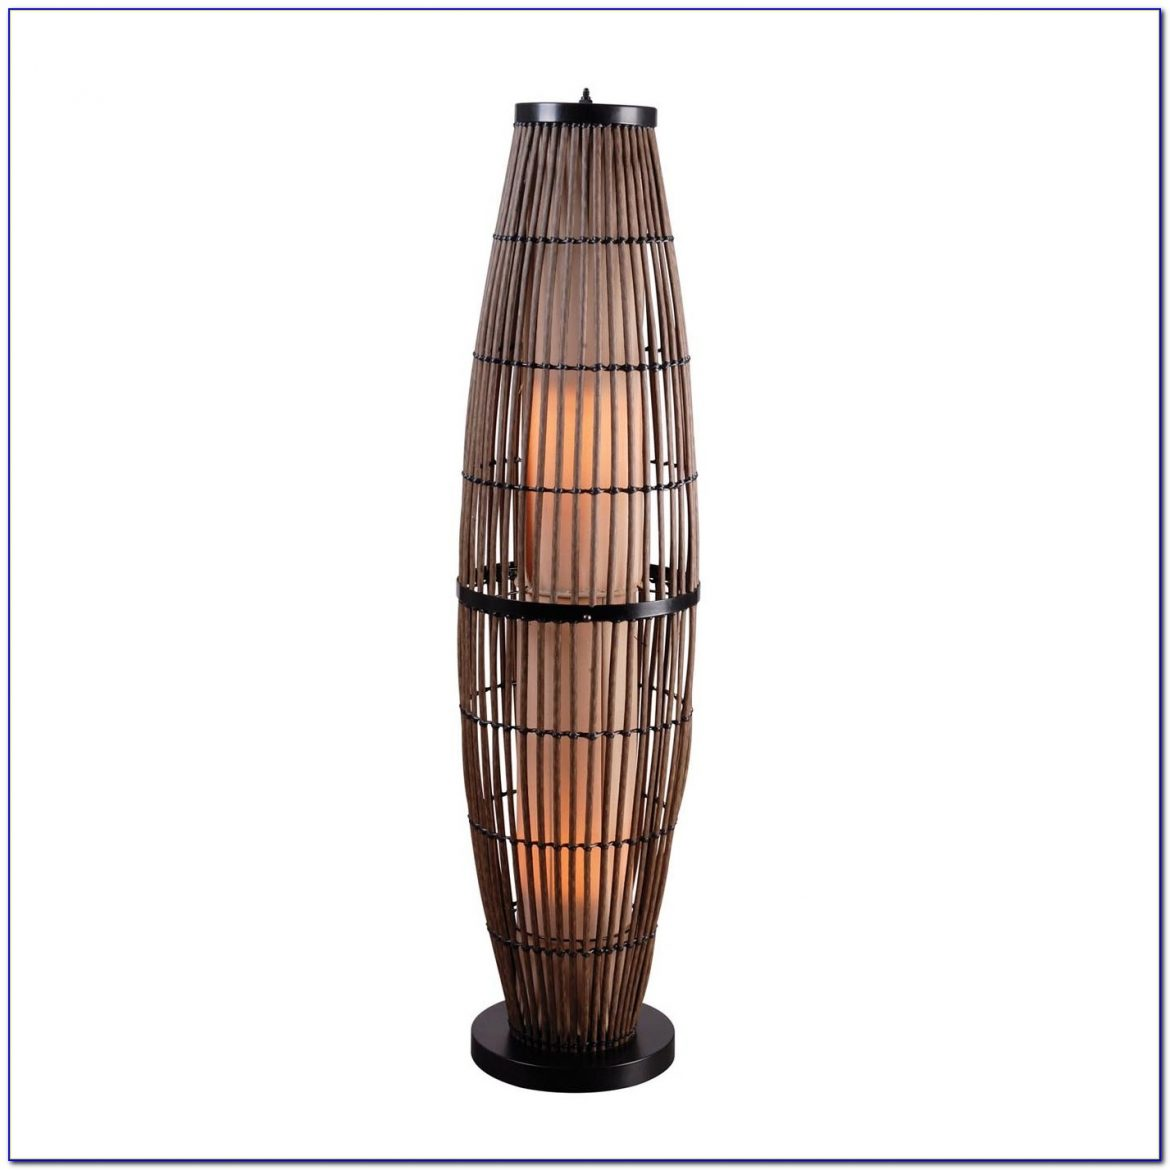 Kenroy Home Theta Floor Lamp